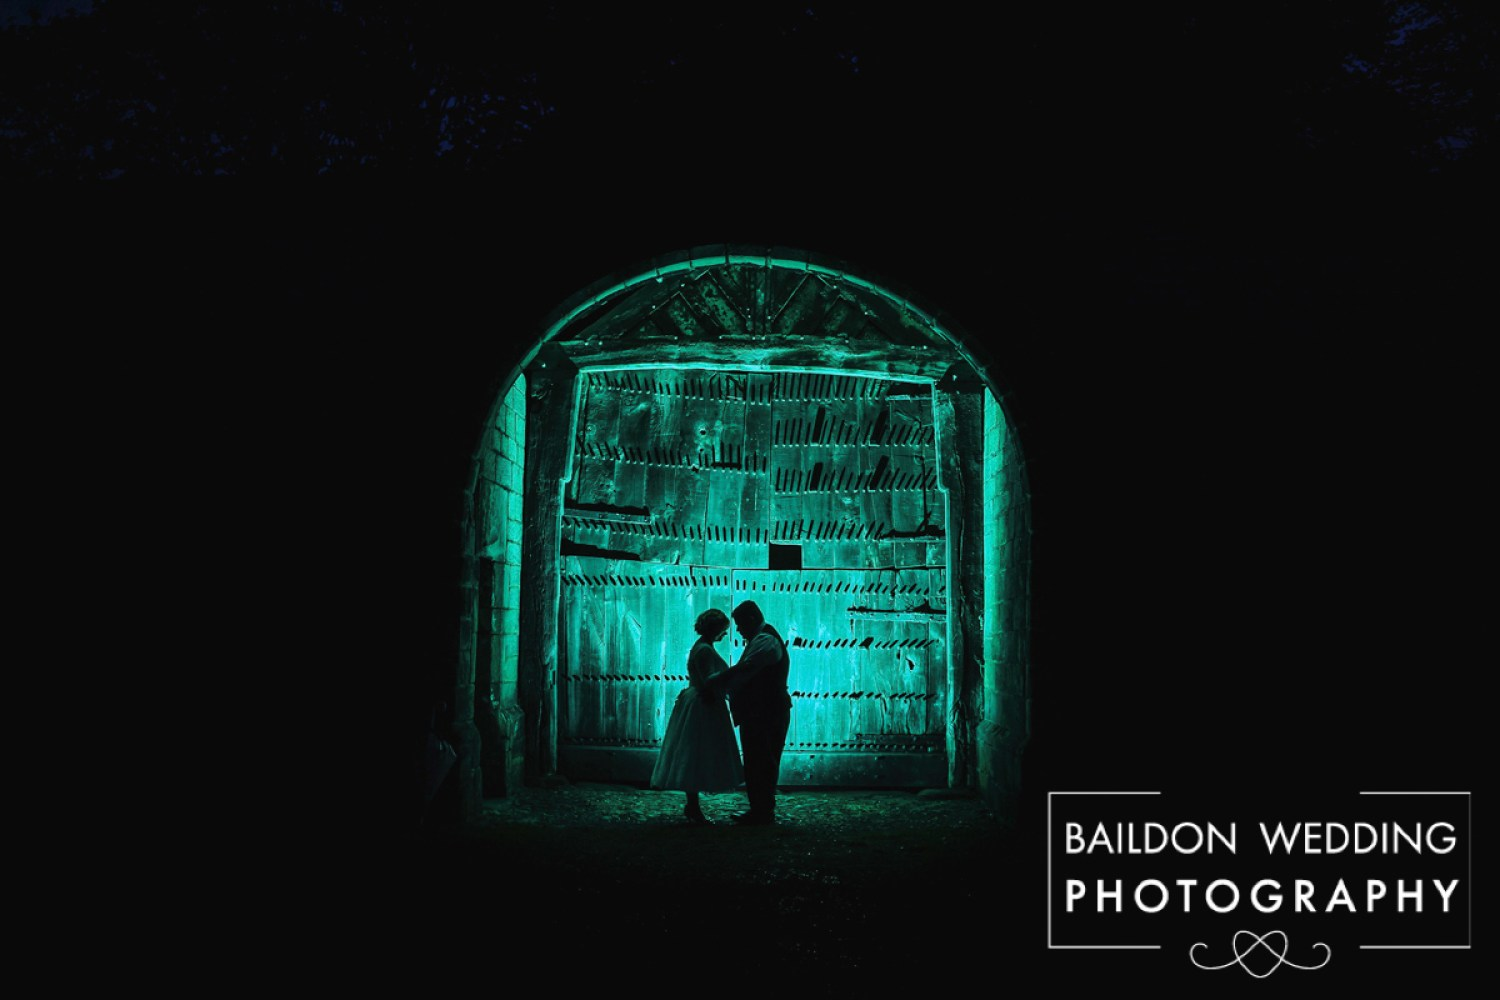 night wedding photograph